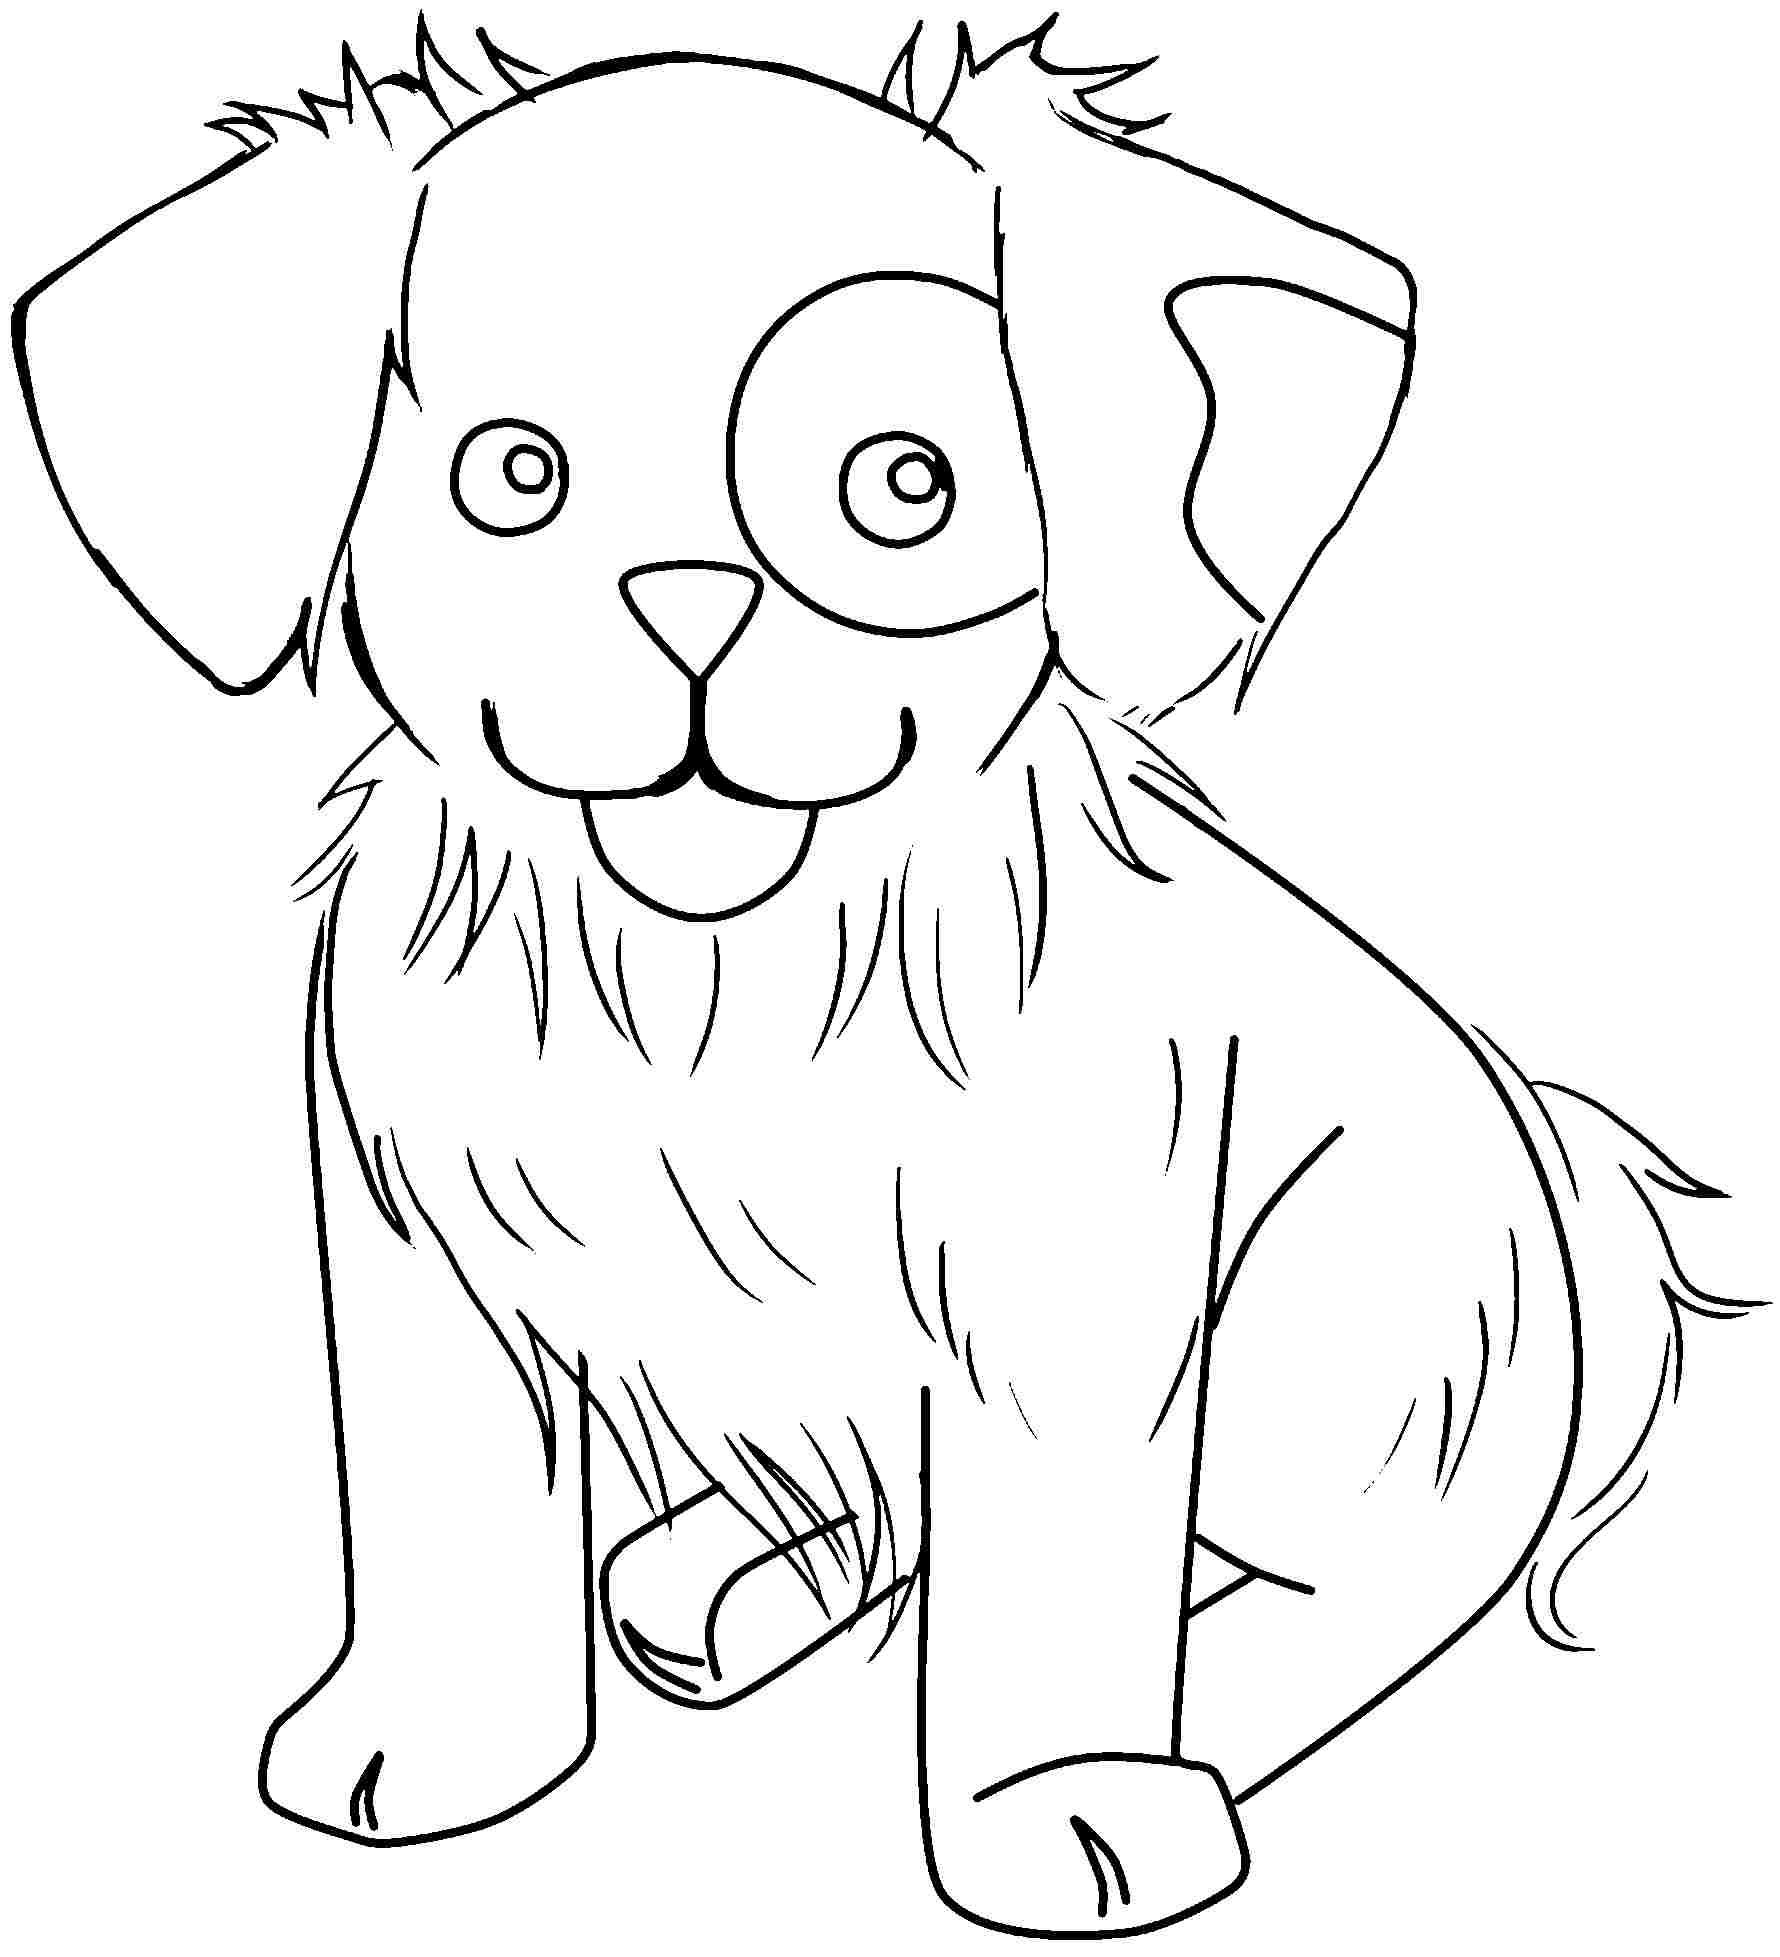 Printable Dog Coloring Pages Cute Dogs Coloring